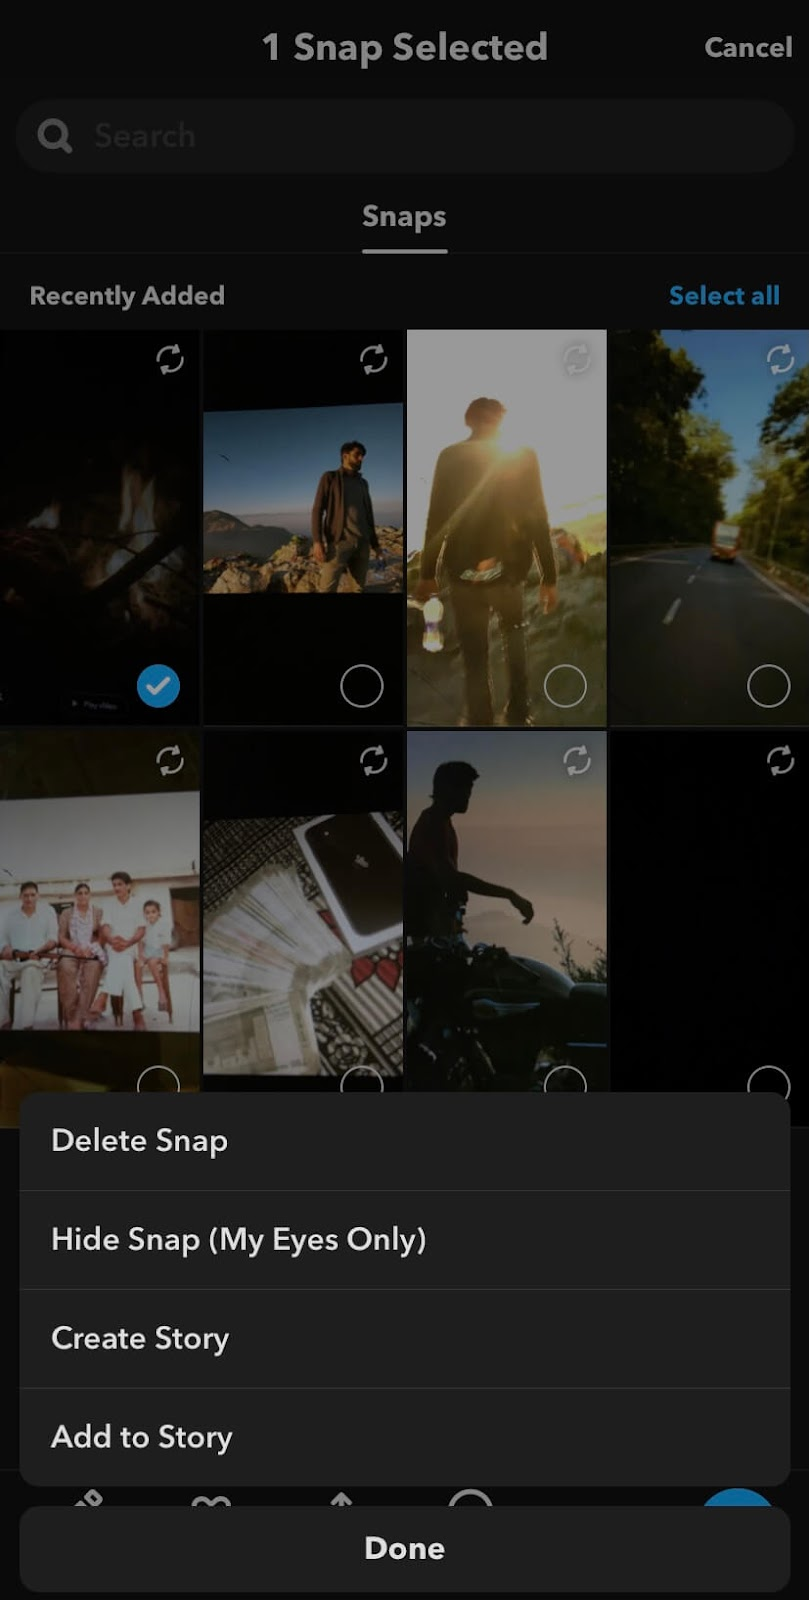 Hide Snap (My Eyes Only) option on Snapchat